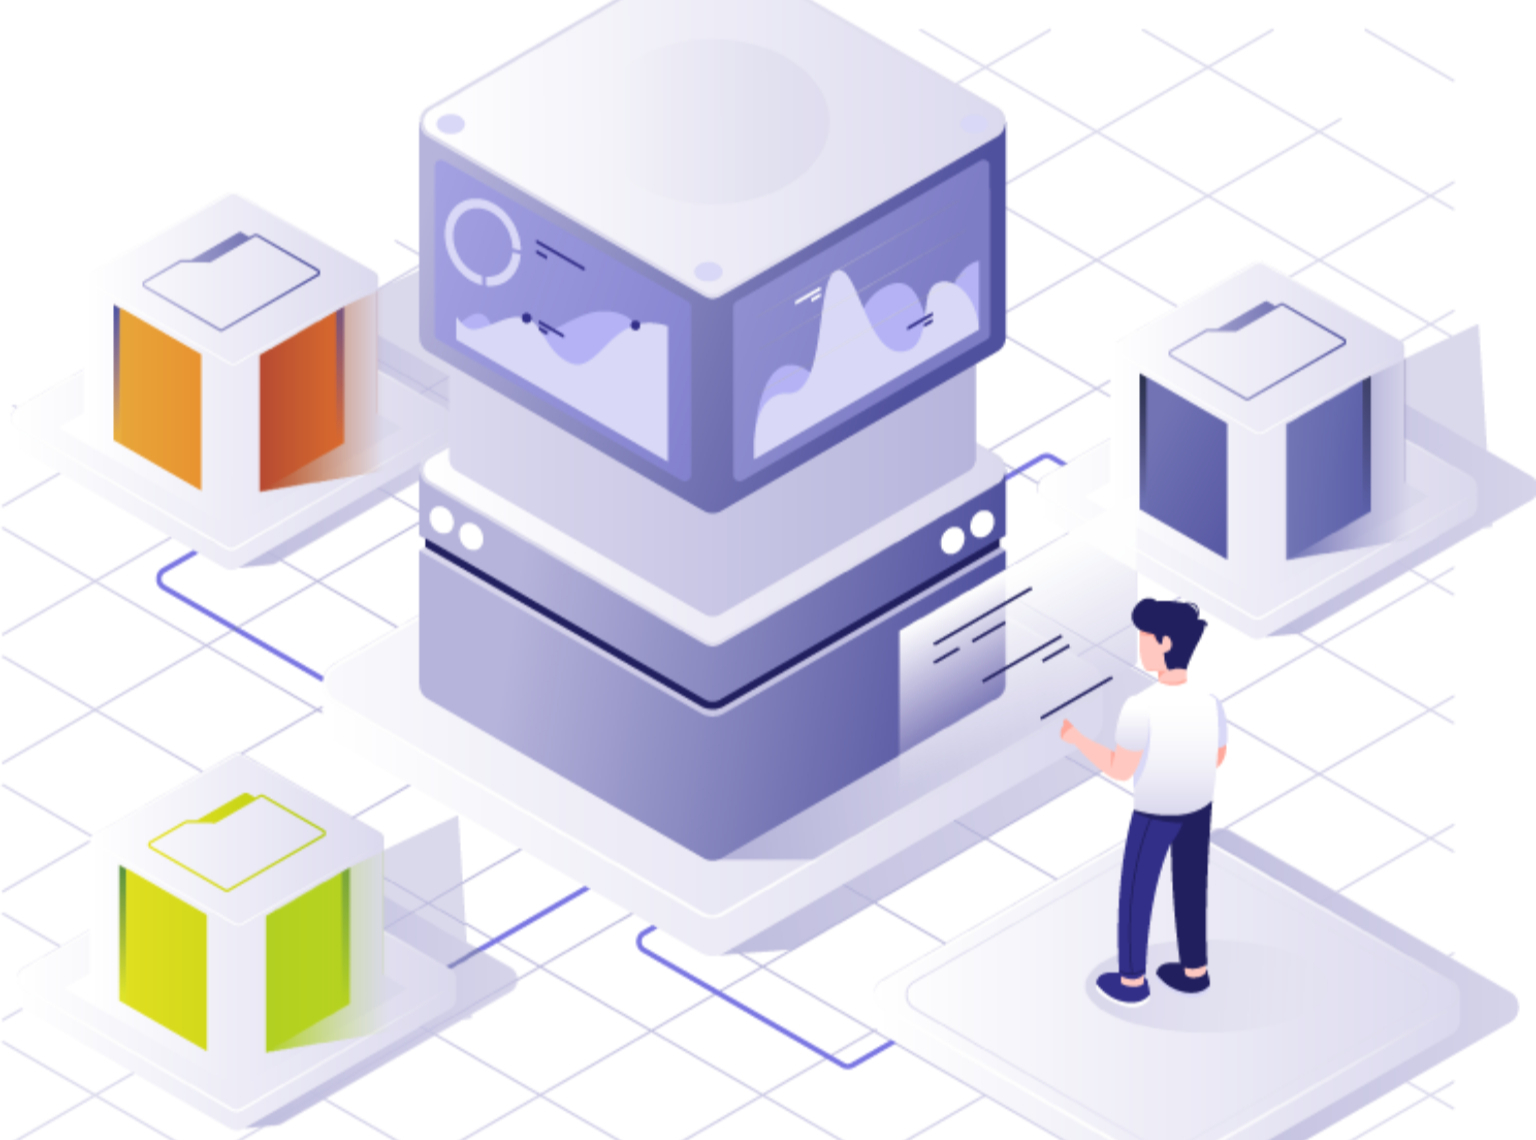 ABOUT FXSOFTLAB